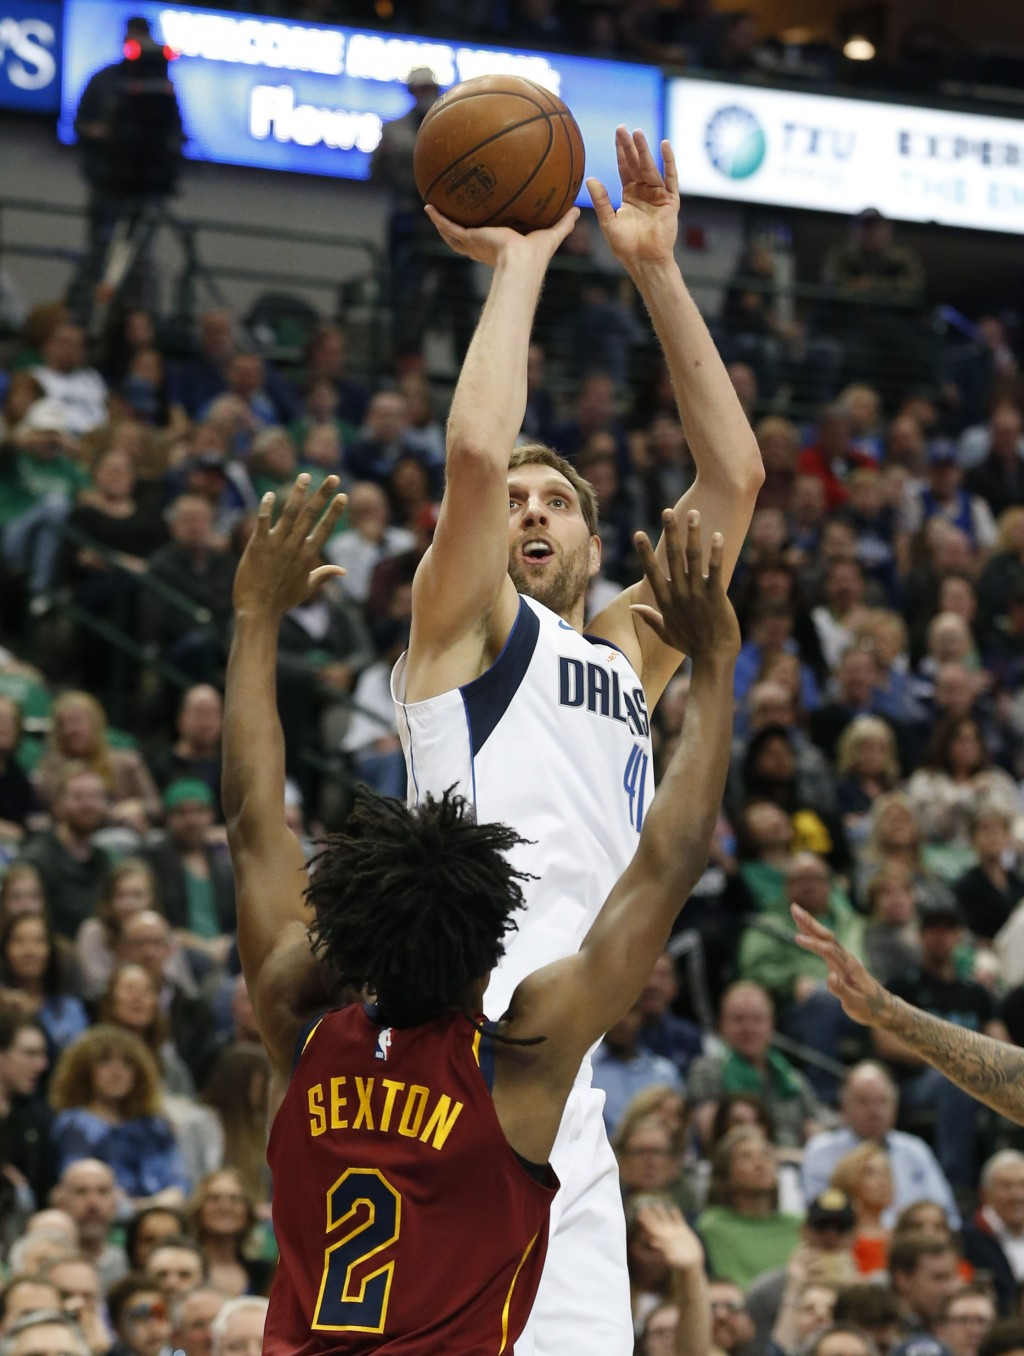 Dallas Mavericks forward Dirk Nowitzki (41) shoots over Cleveland Cavaliers guard Collin Sexton (2) during the first half of an NBA basketball game in